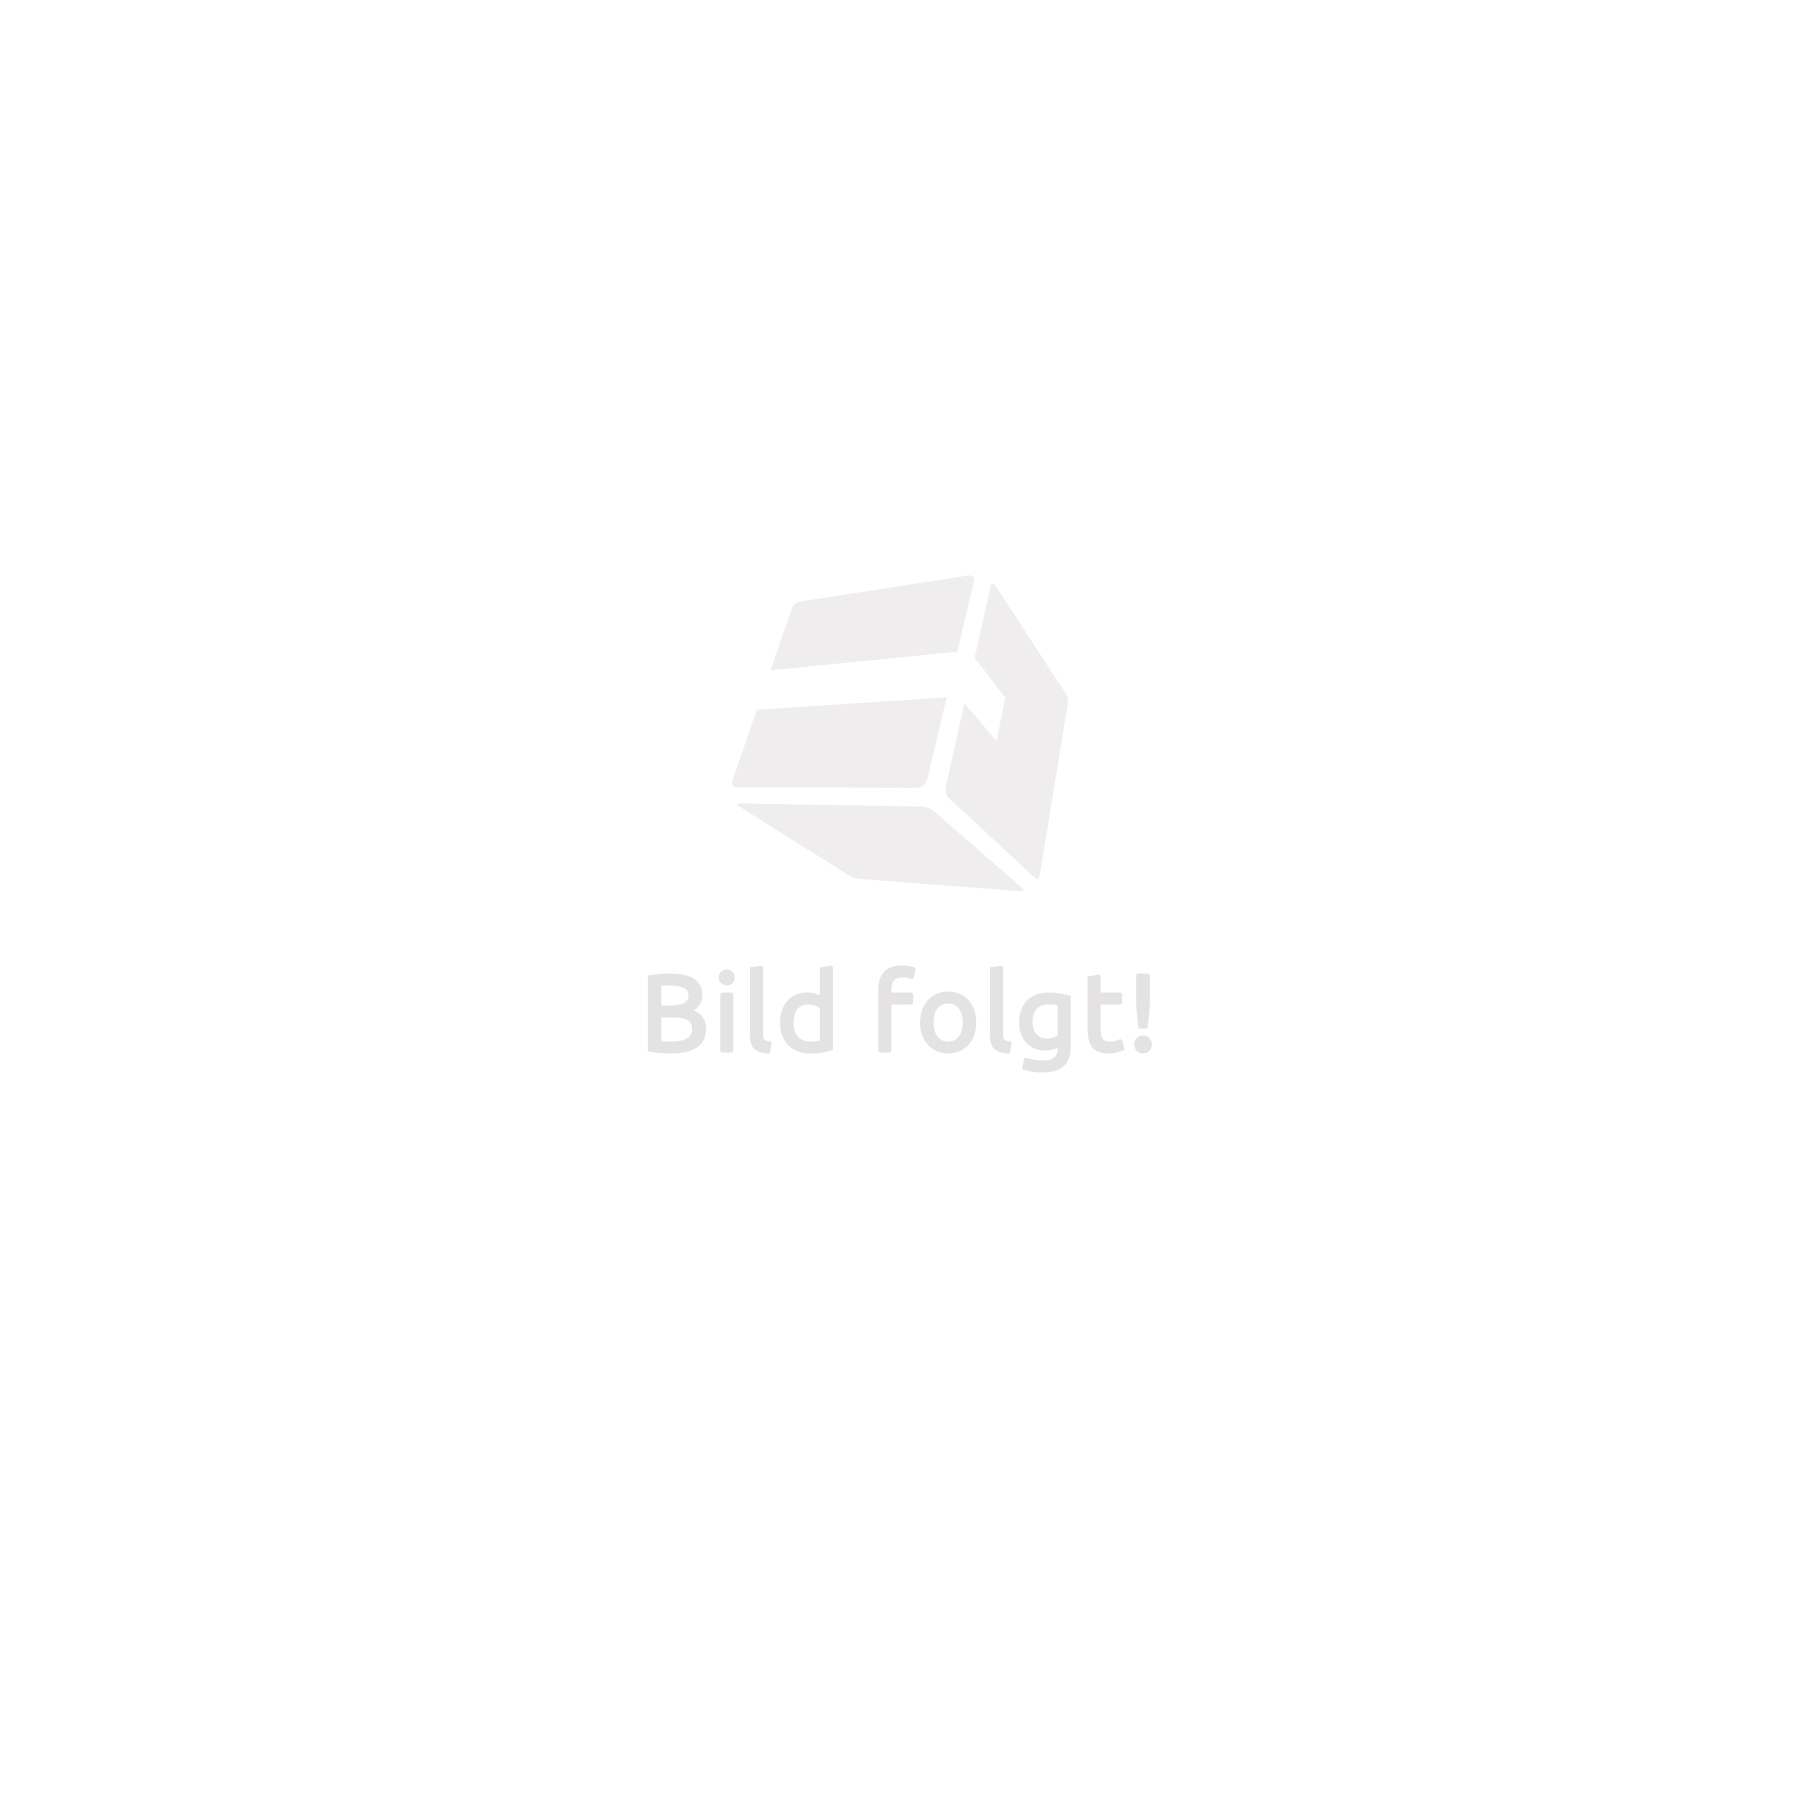 Soporte de pared para monitores de 32-63″ (81-160cm) inclinable nivel de aire